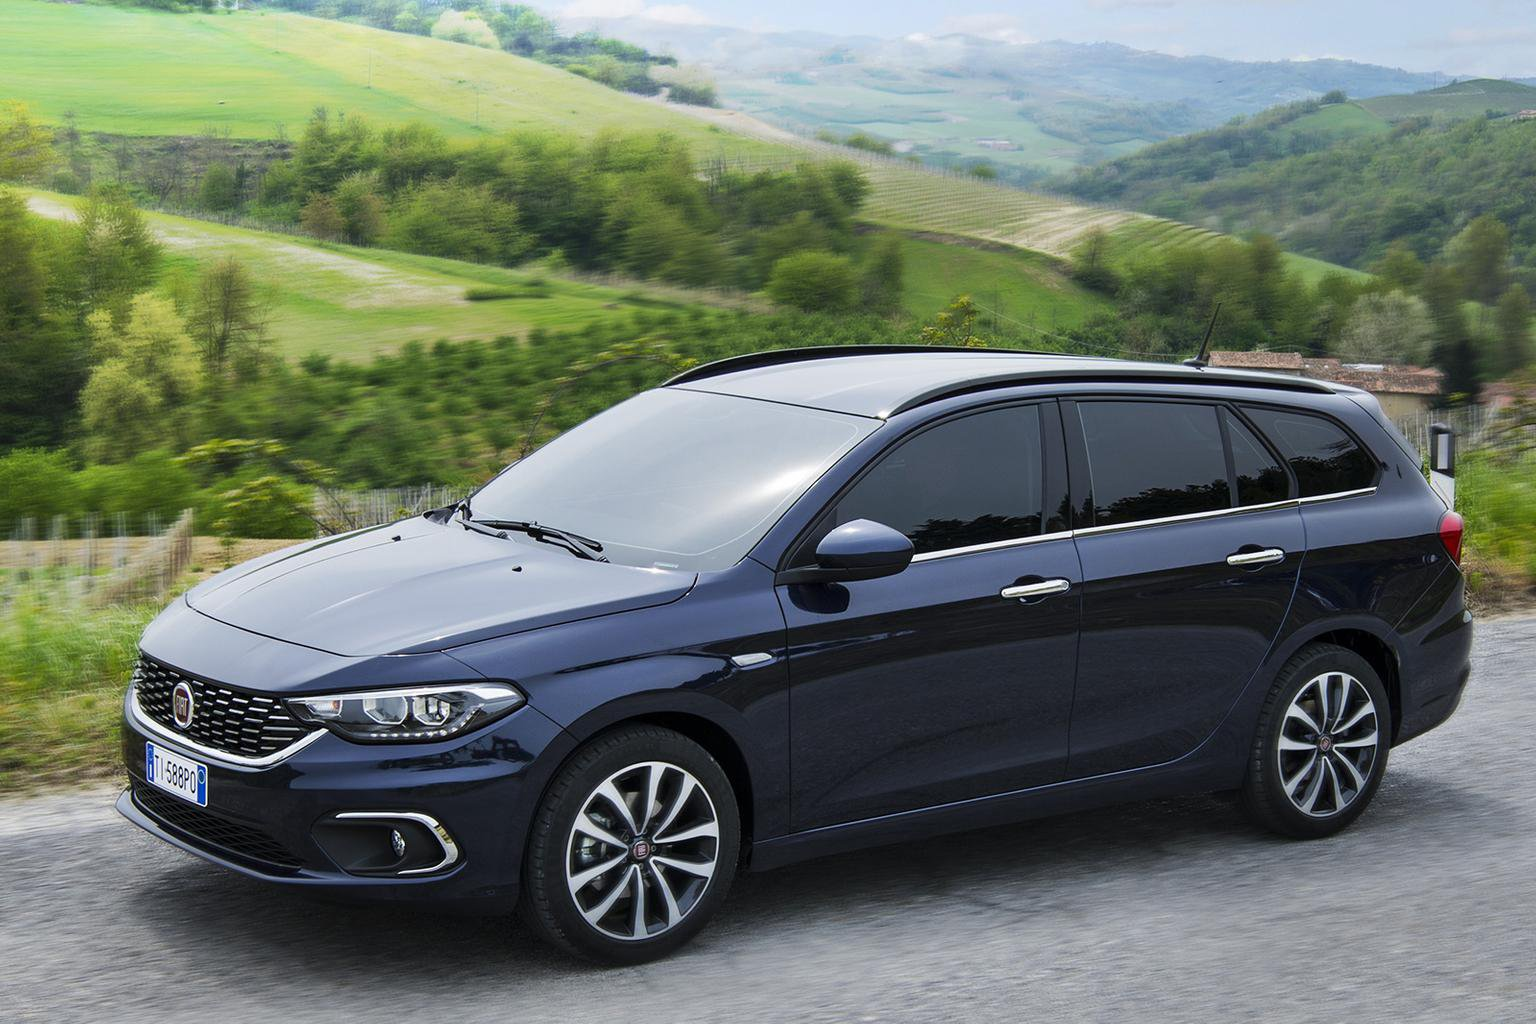 2016 Fiat Tipo - everything you need to know